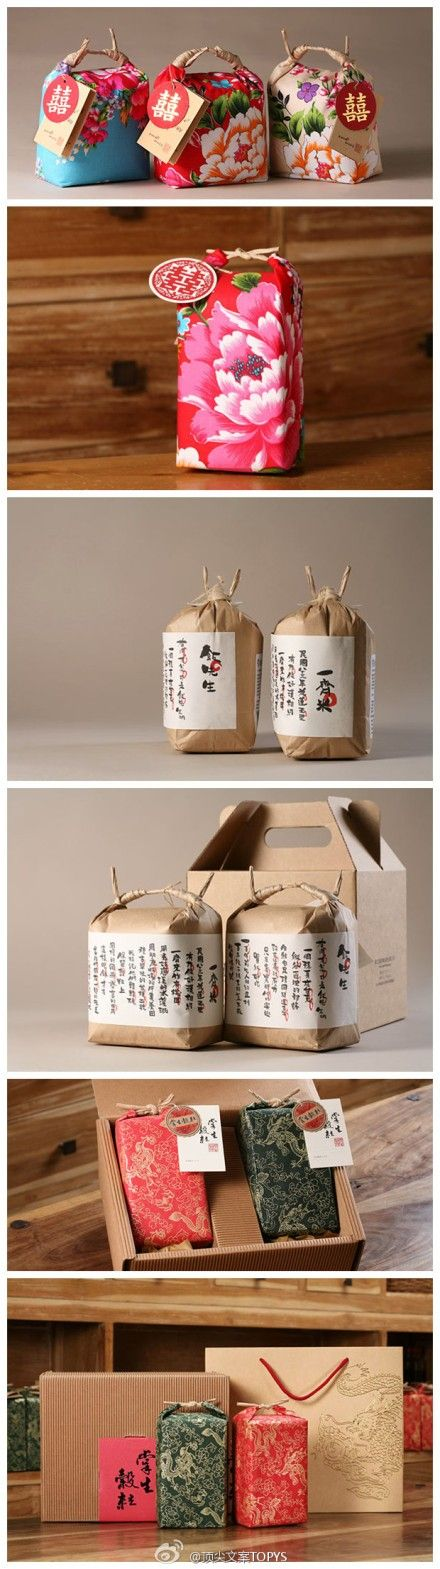 ♂ Creative Package Design Chinese style Asian Inspired Taiwan Rice packing 台湾大米包装包装和广告